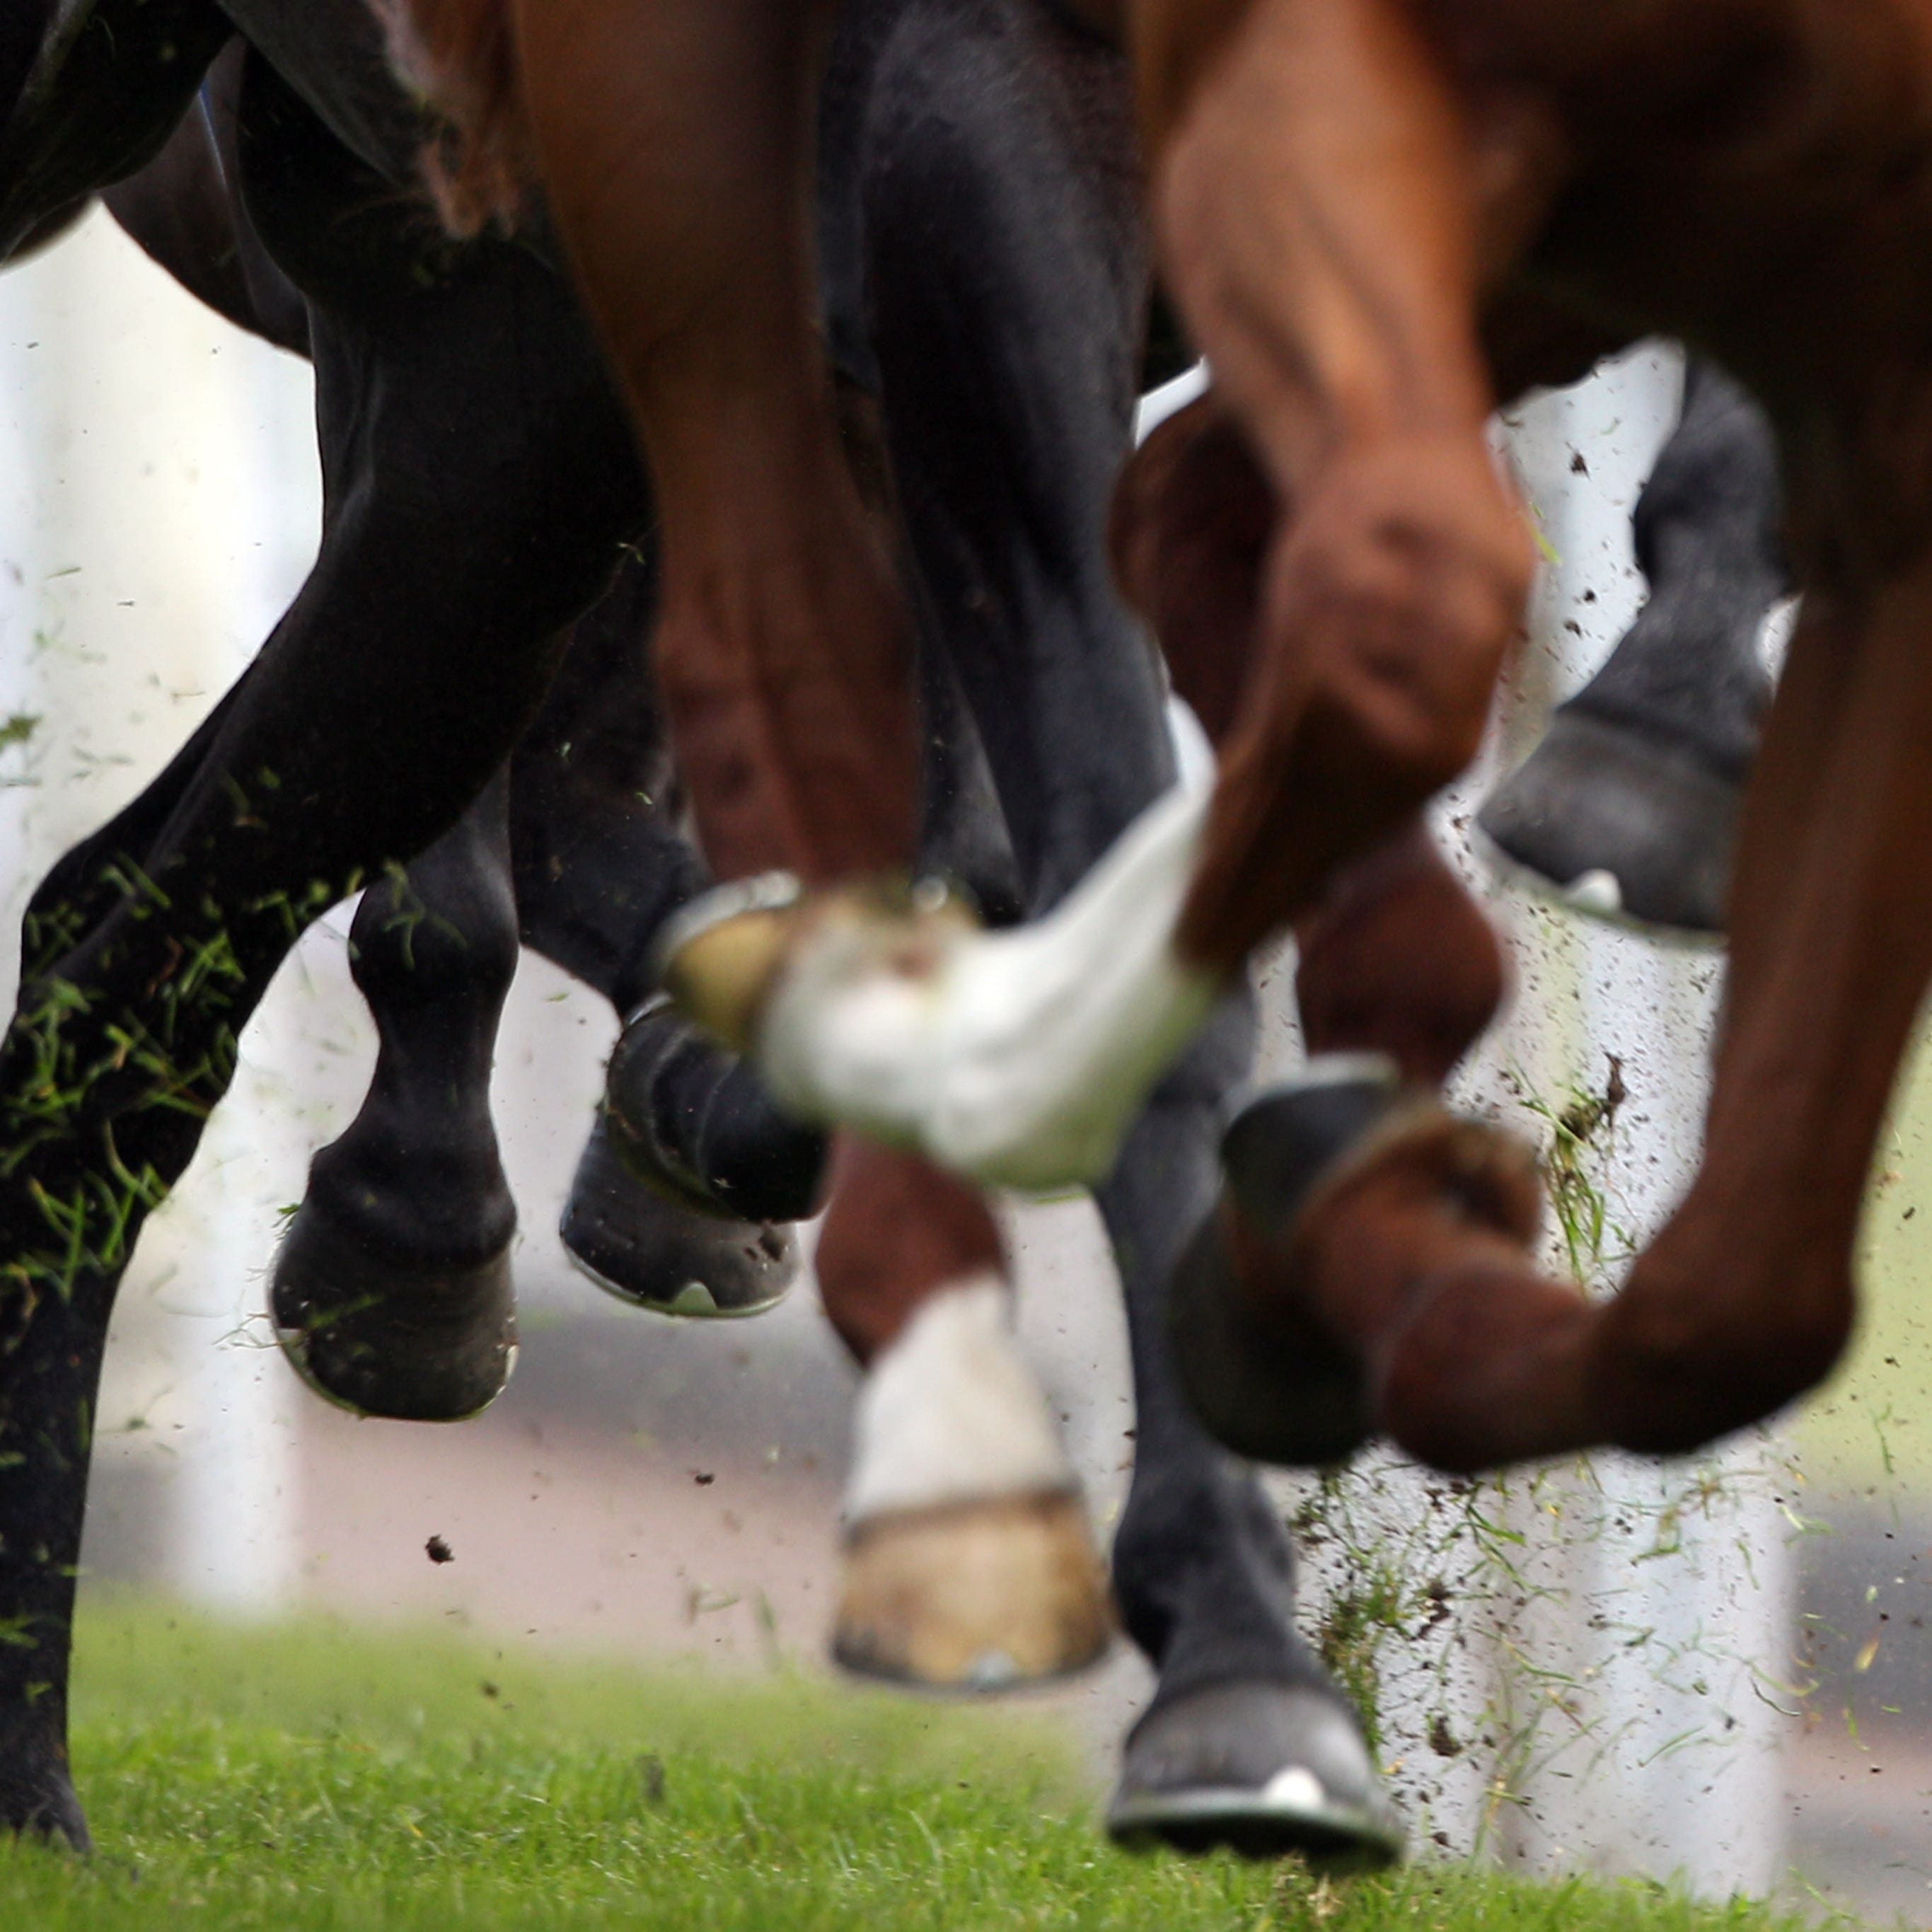 Horse Racing – May Festival – totesport Cup Day – Chester Racecourse